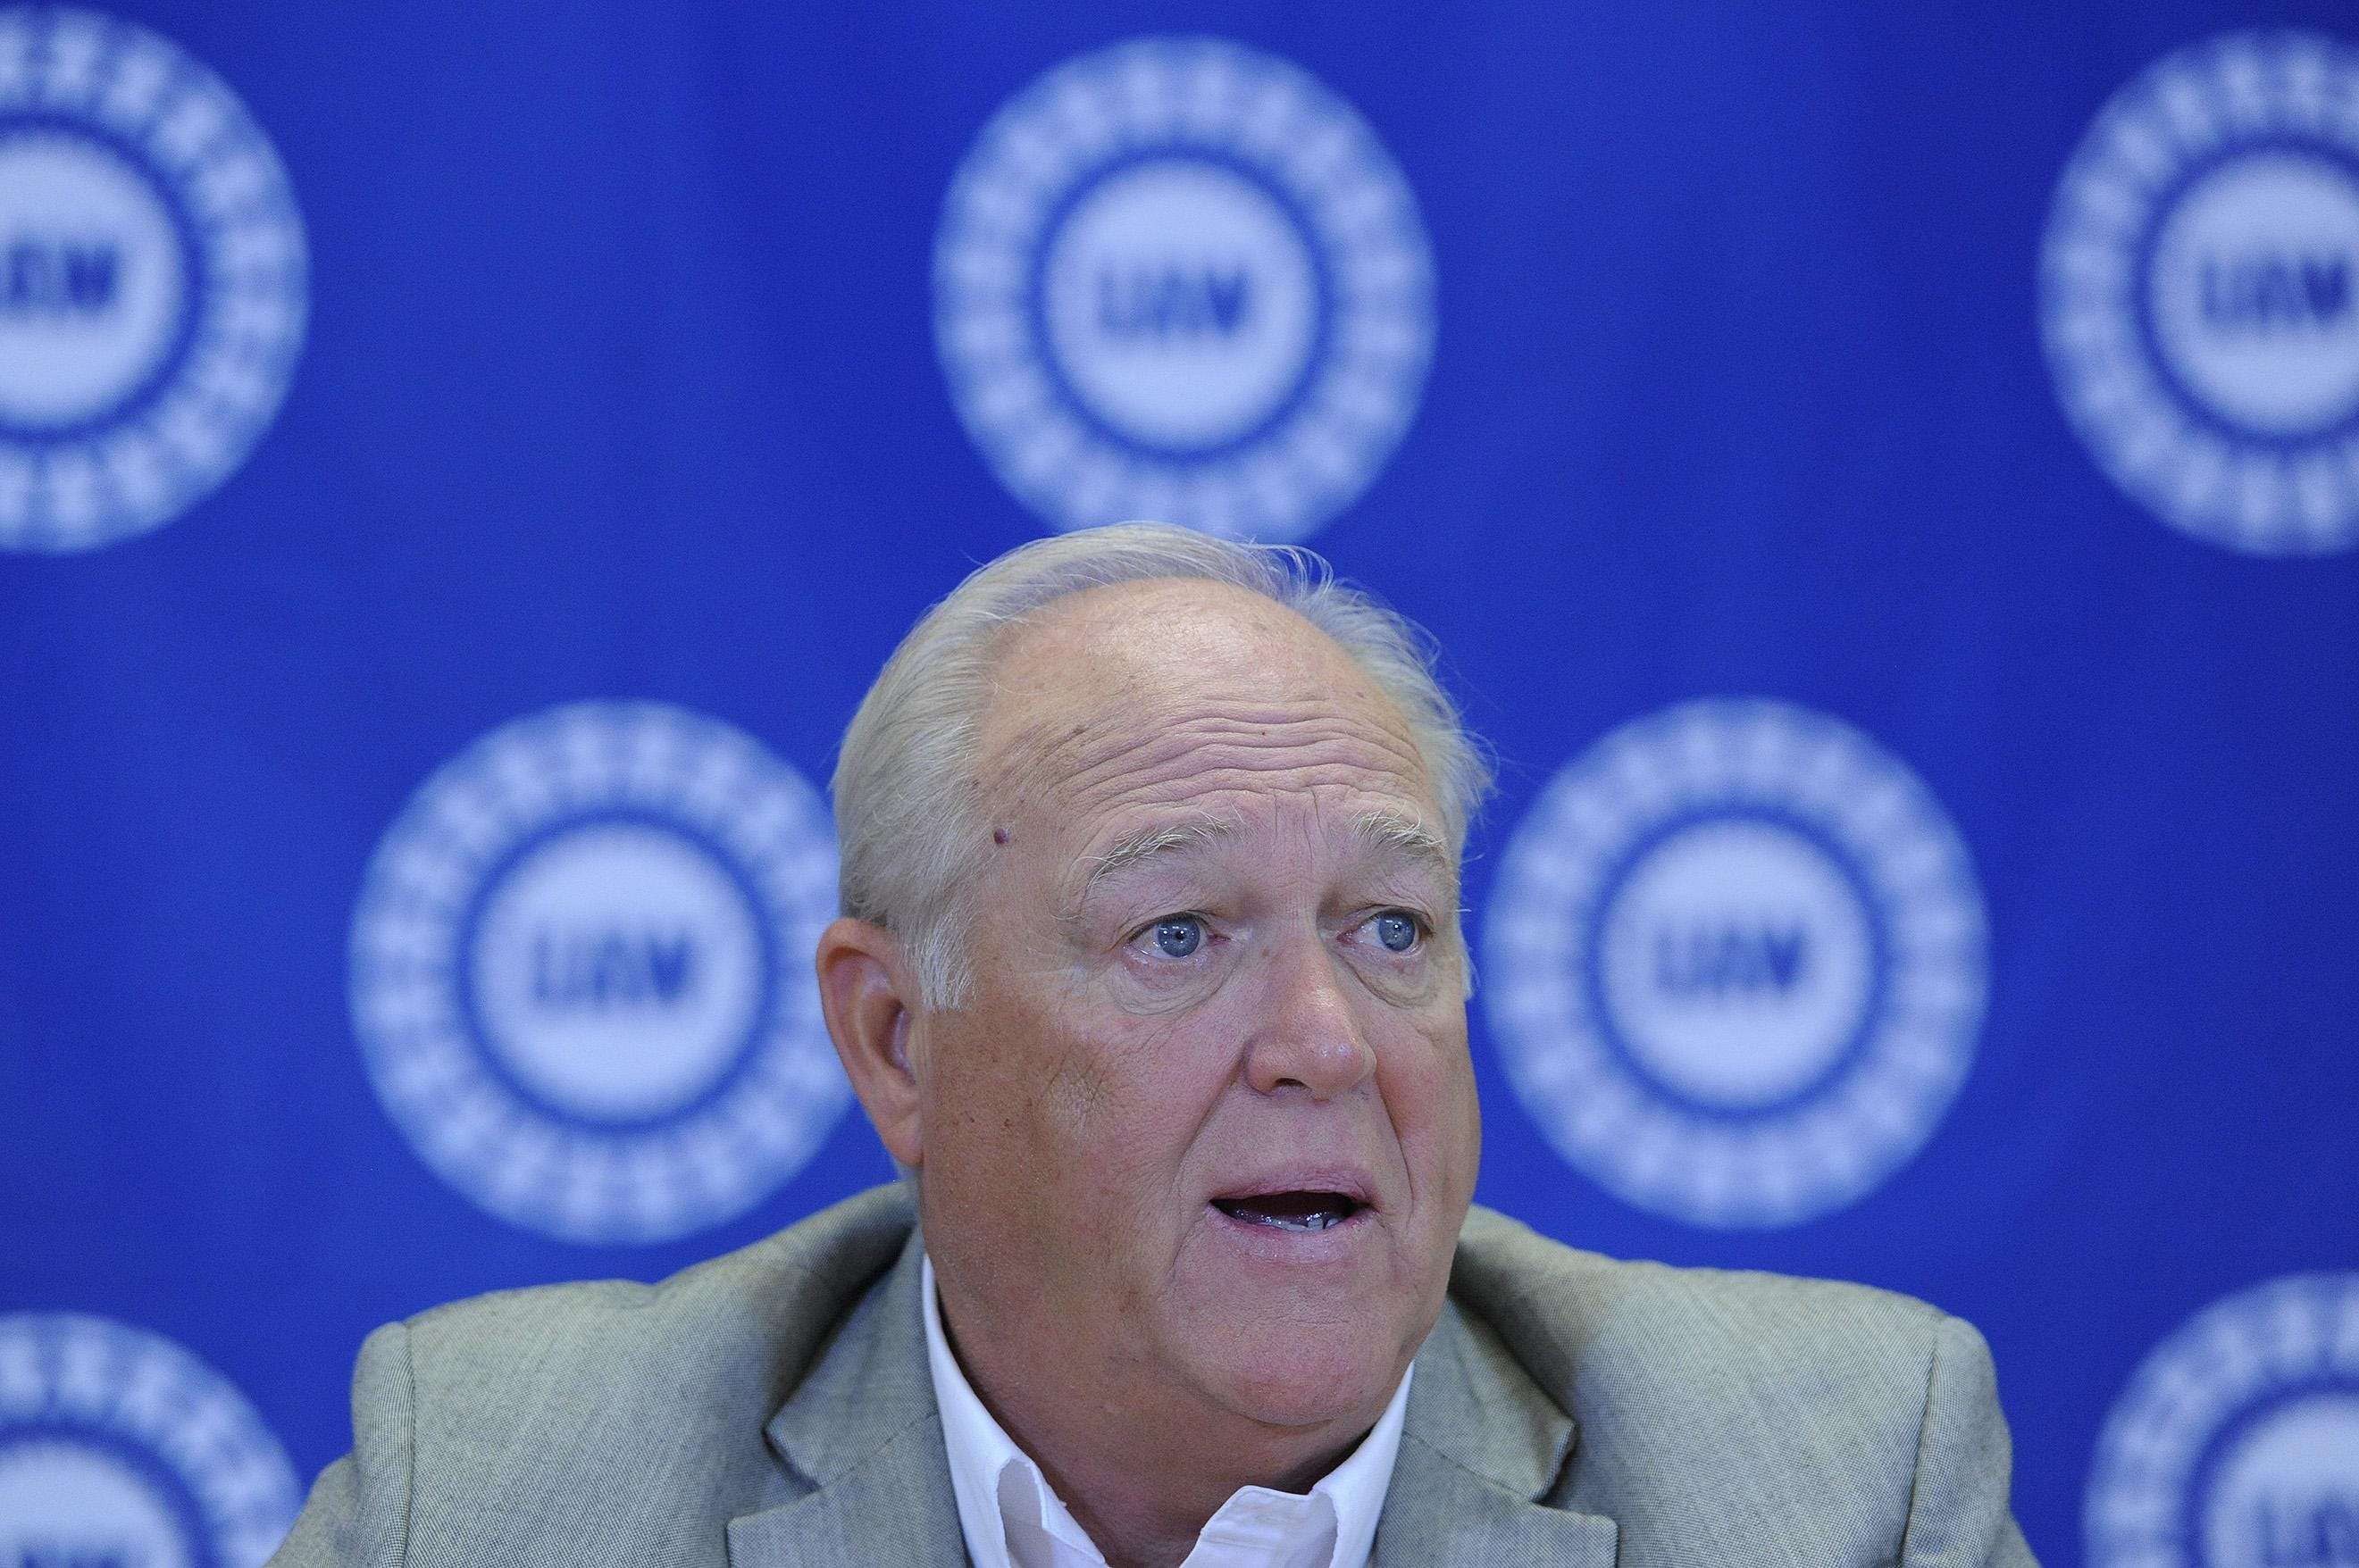 Ex-UAW President Williams sentenced to 21 months in union corruption probe